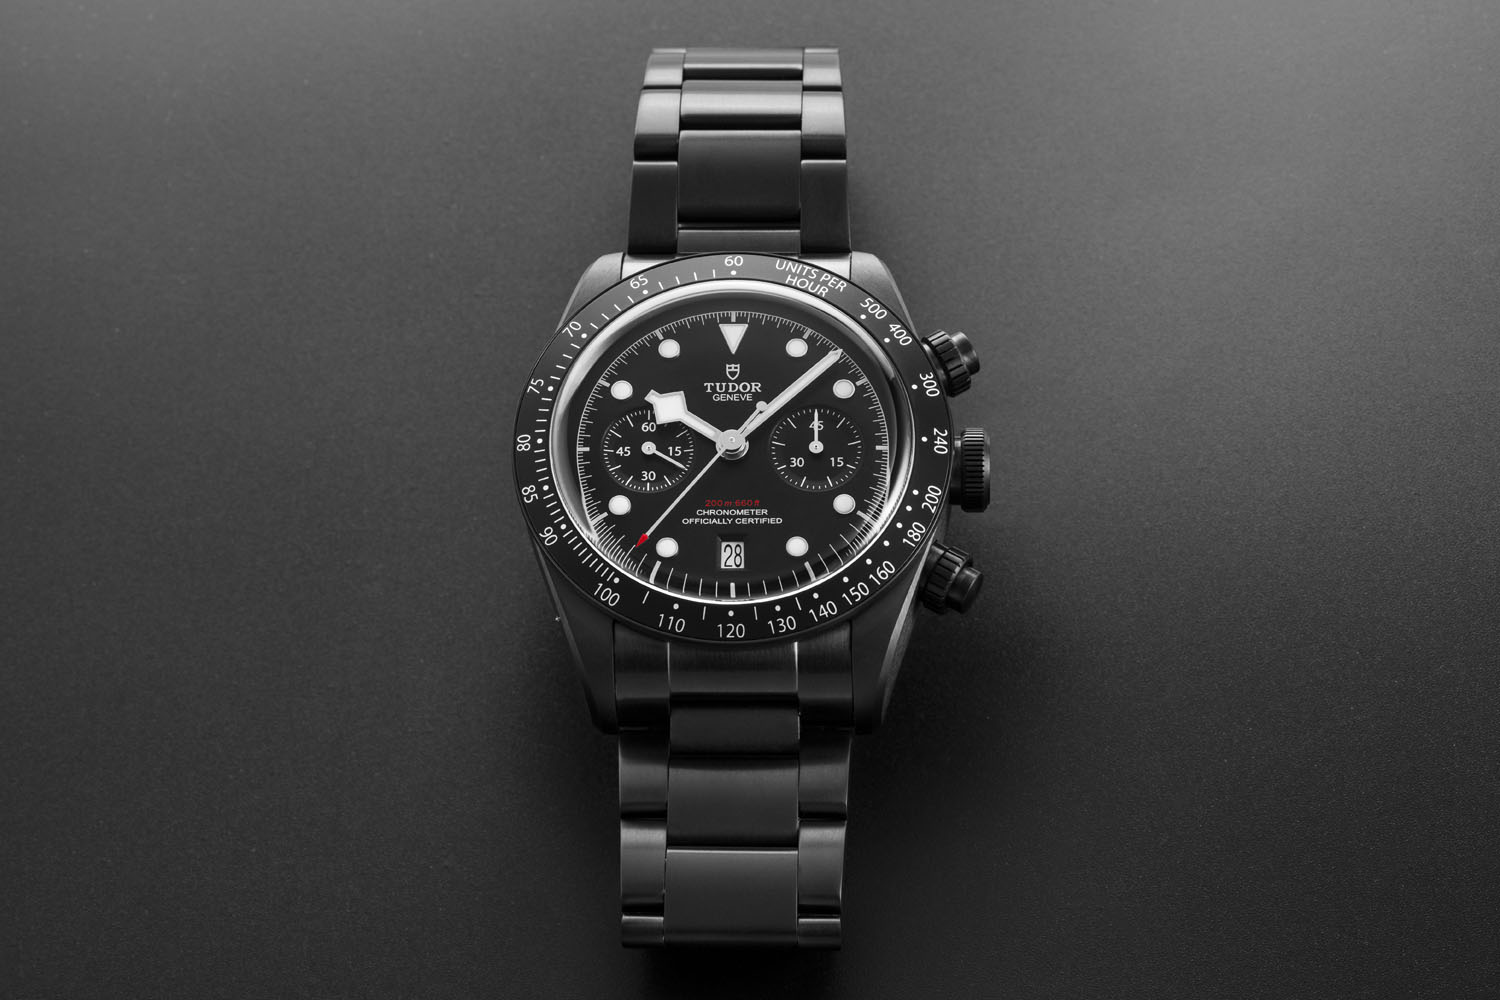 Tudor Black Bay Chrono Dark (Image © Revolution)